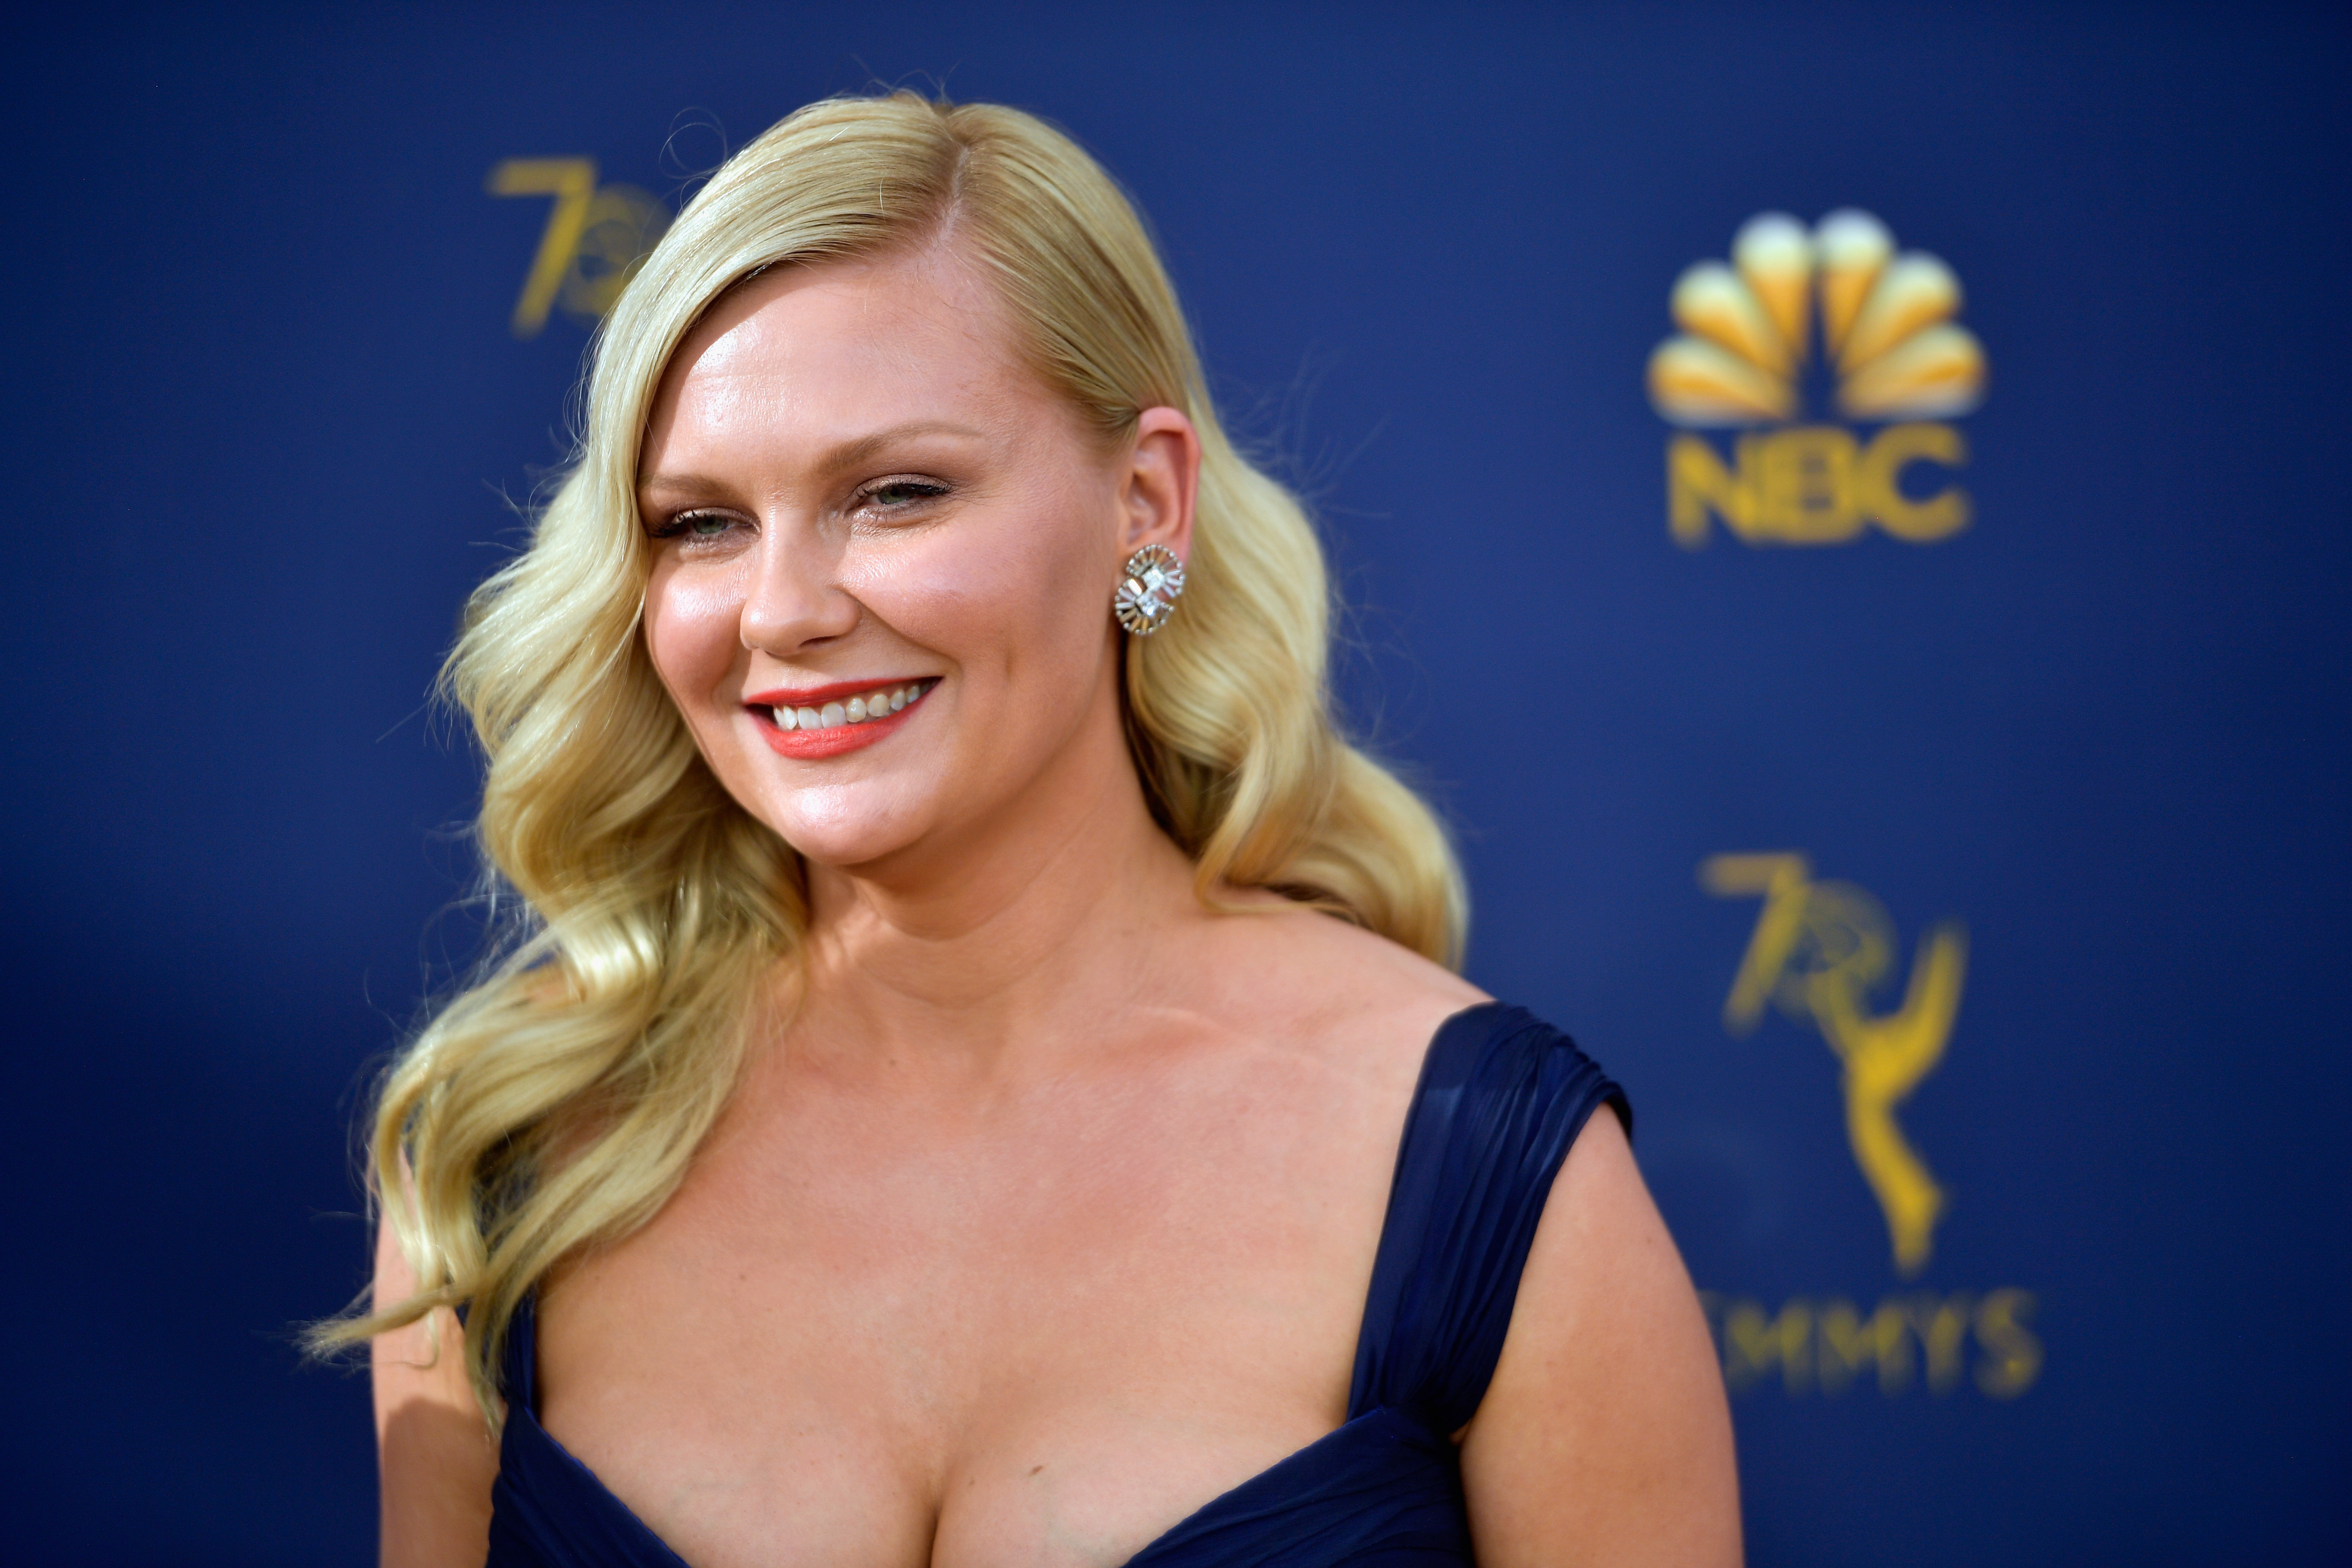 Kirsten Dunst attends the 70th Emmy Awards at Microsoft Theater on September 17, 2018 in Los Angeles, California.